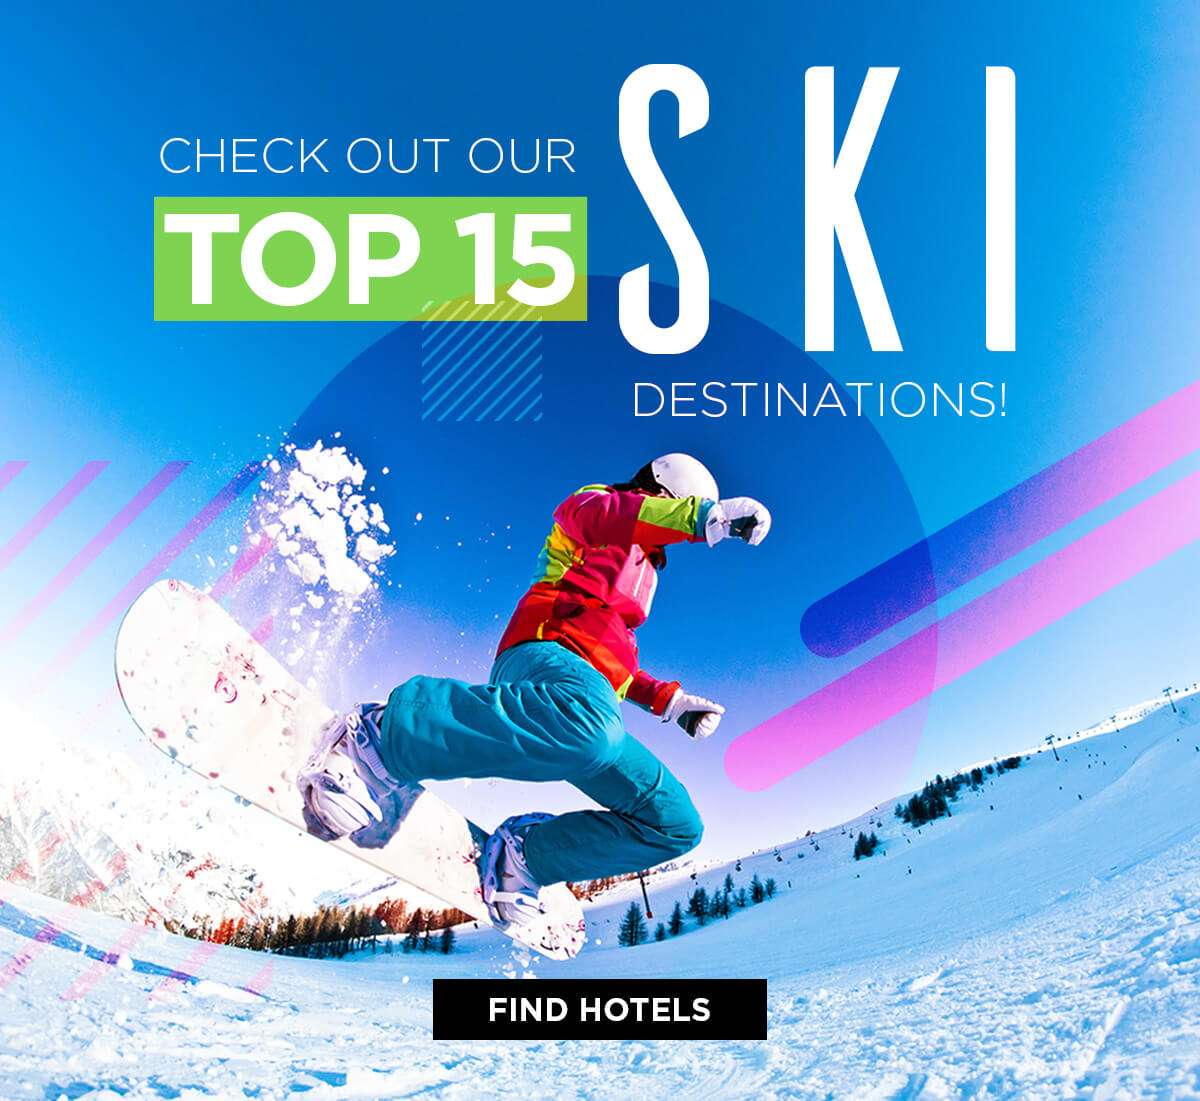 Check out our top 15 ski destinations